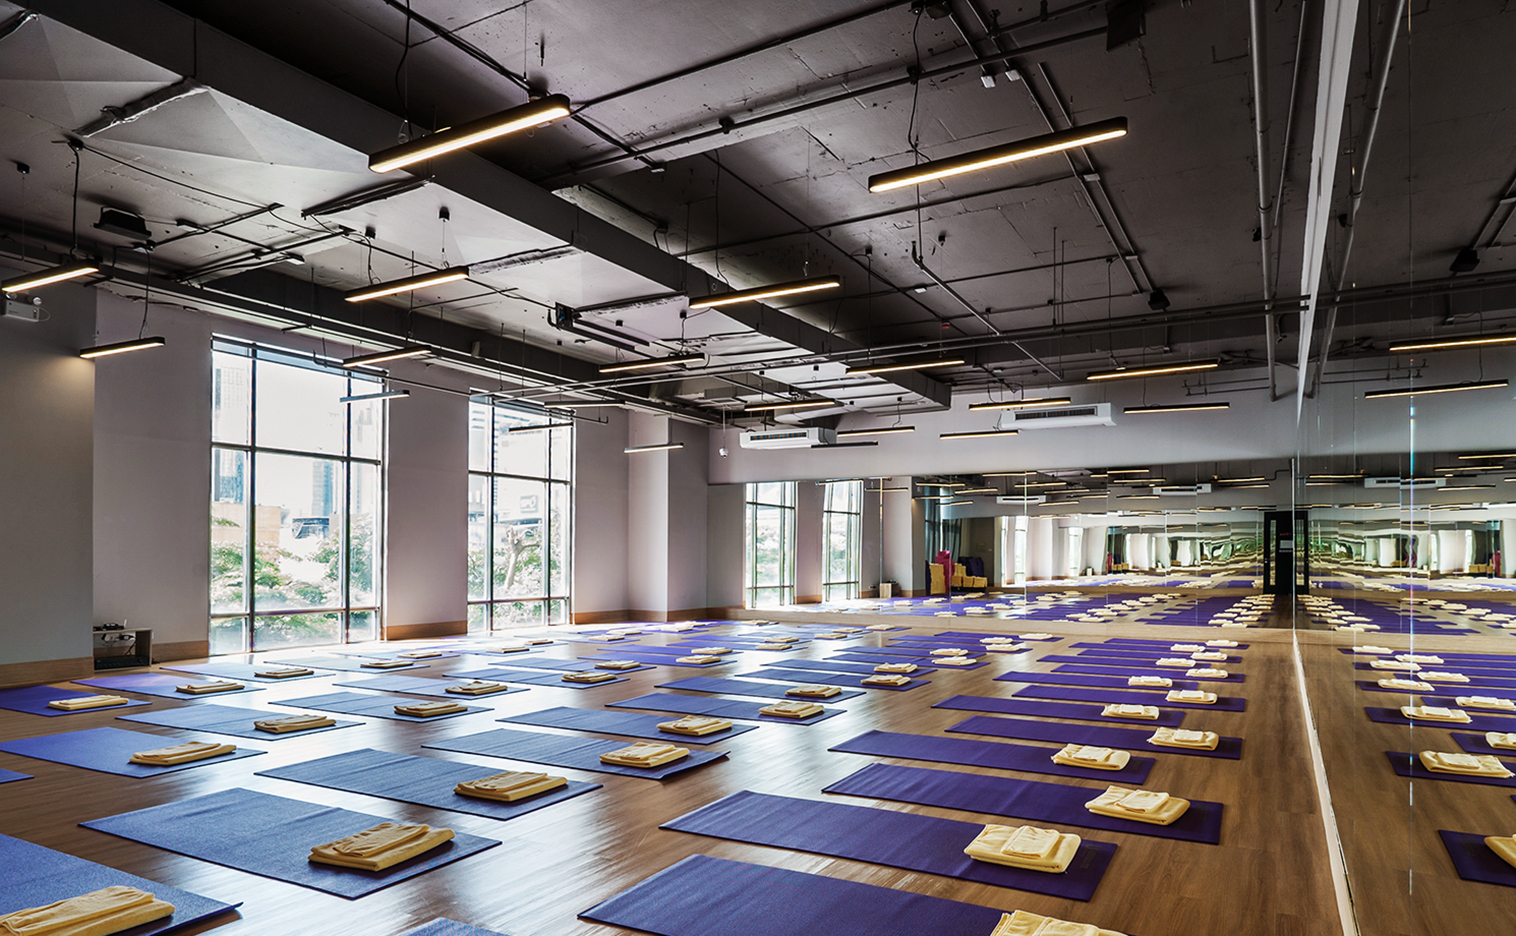 10DESIGN absolute U yoga fitness life style bangkok wellness interior design 17